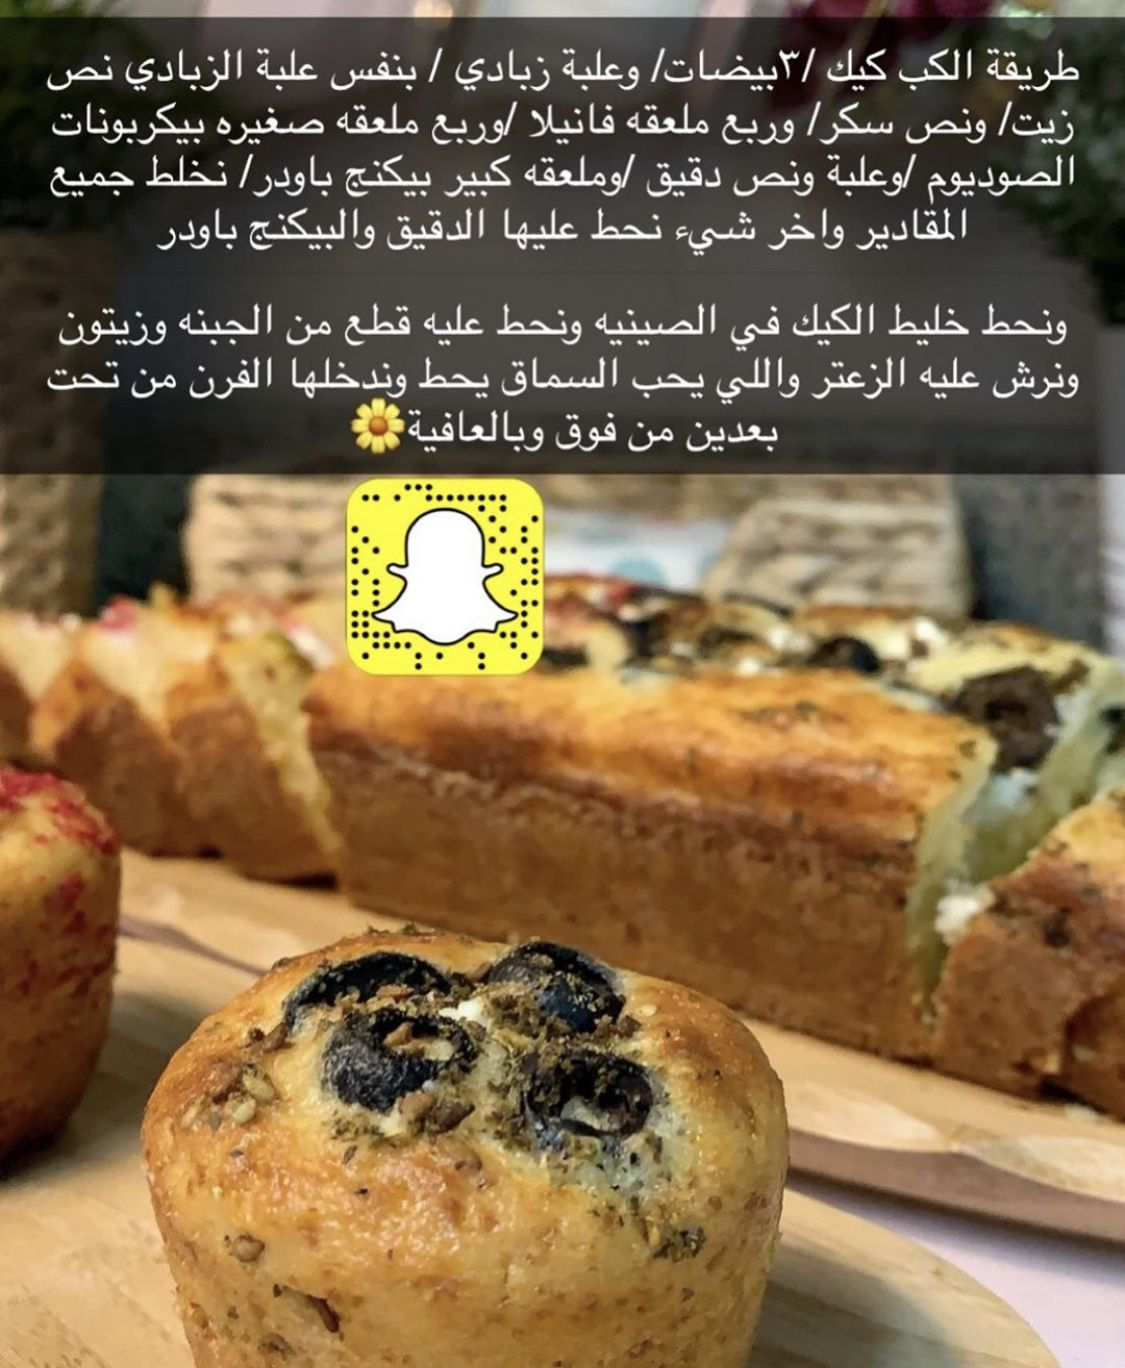 Pin By Faiza Shahid On Cooking Yummy Food Dessert Arabic Food Food And Drink